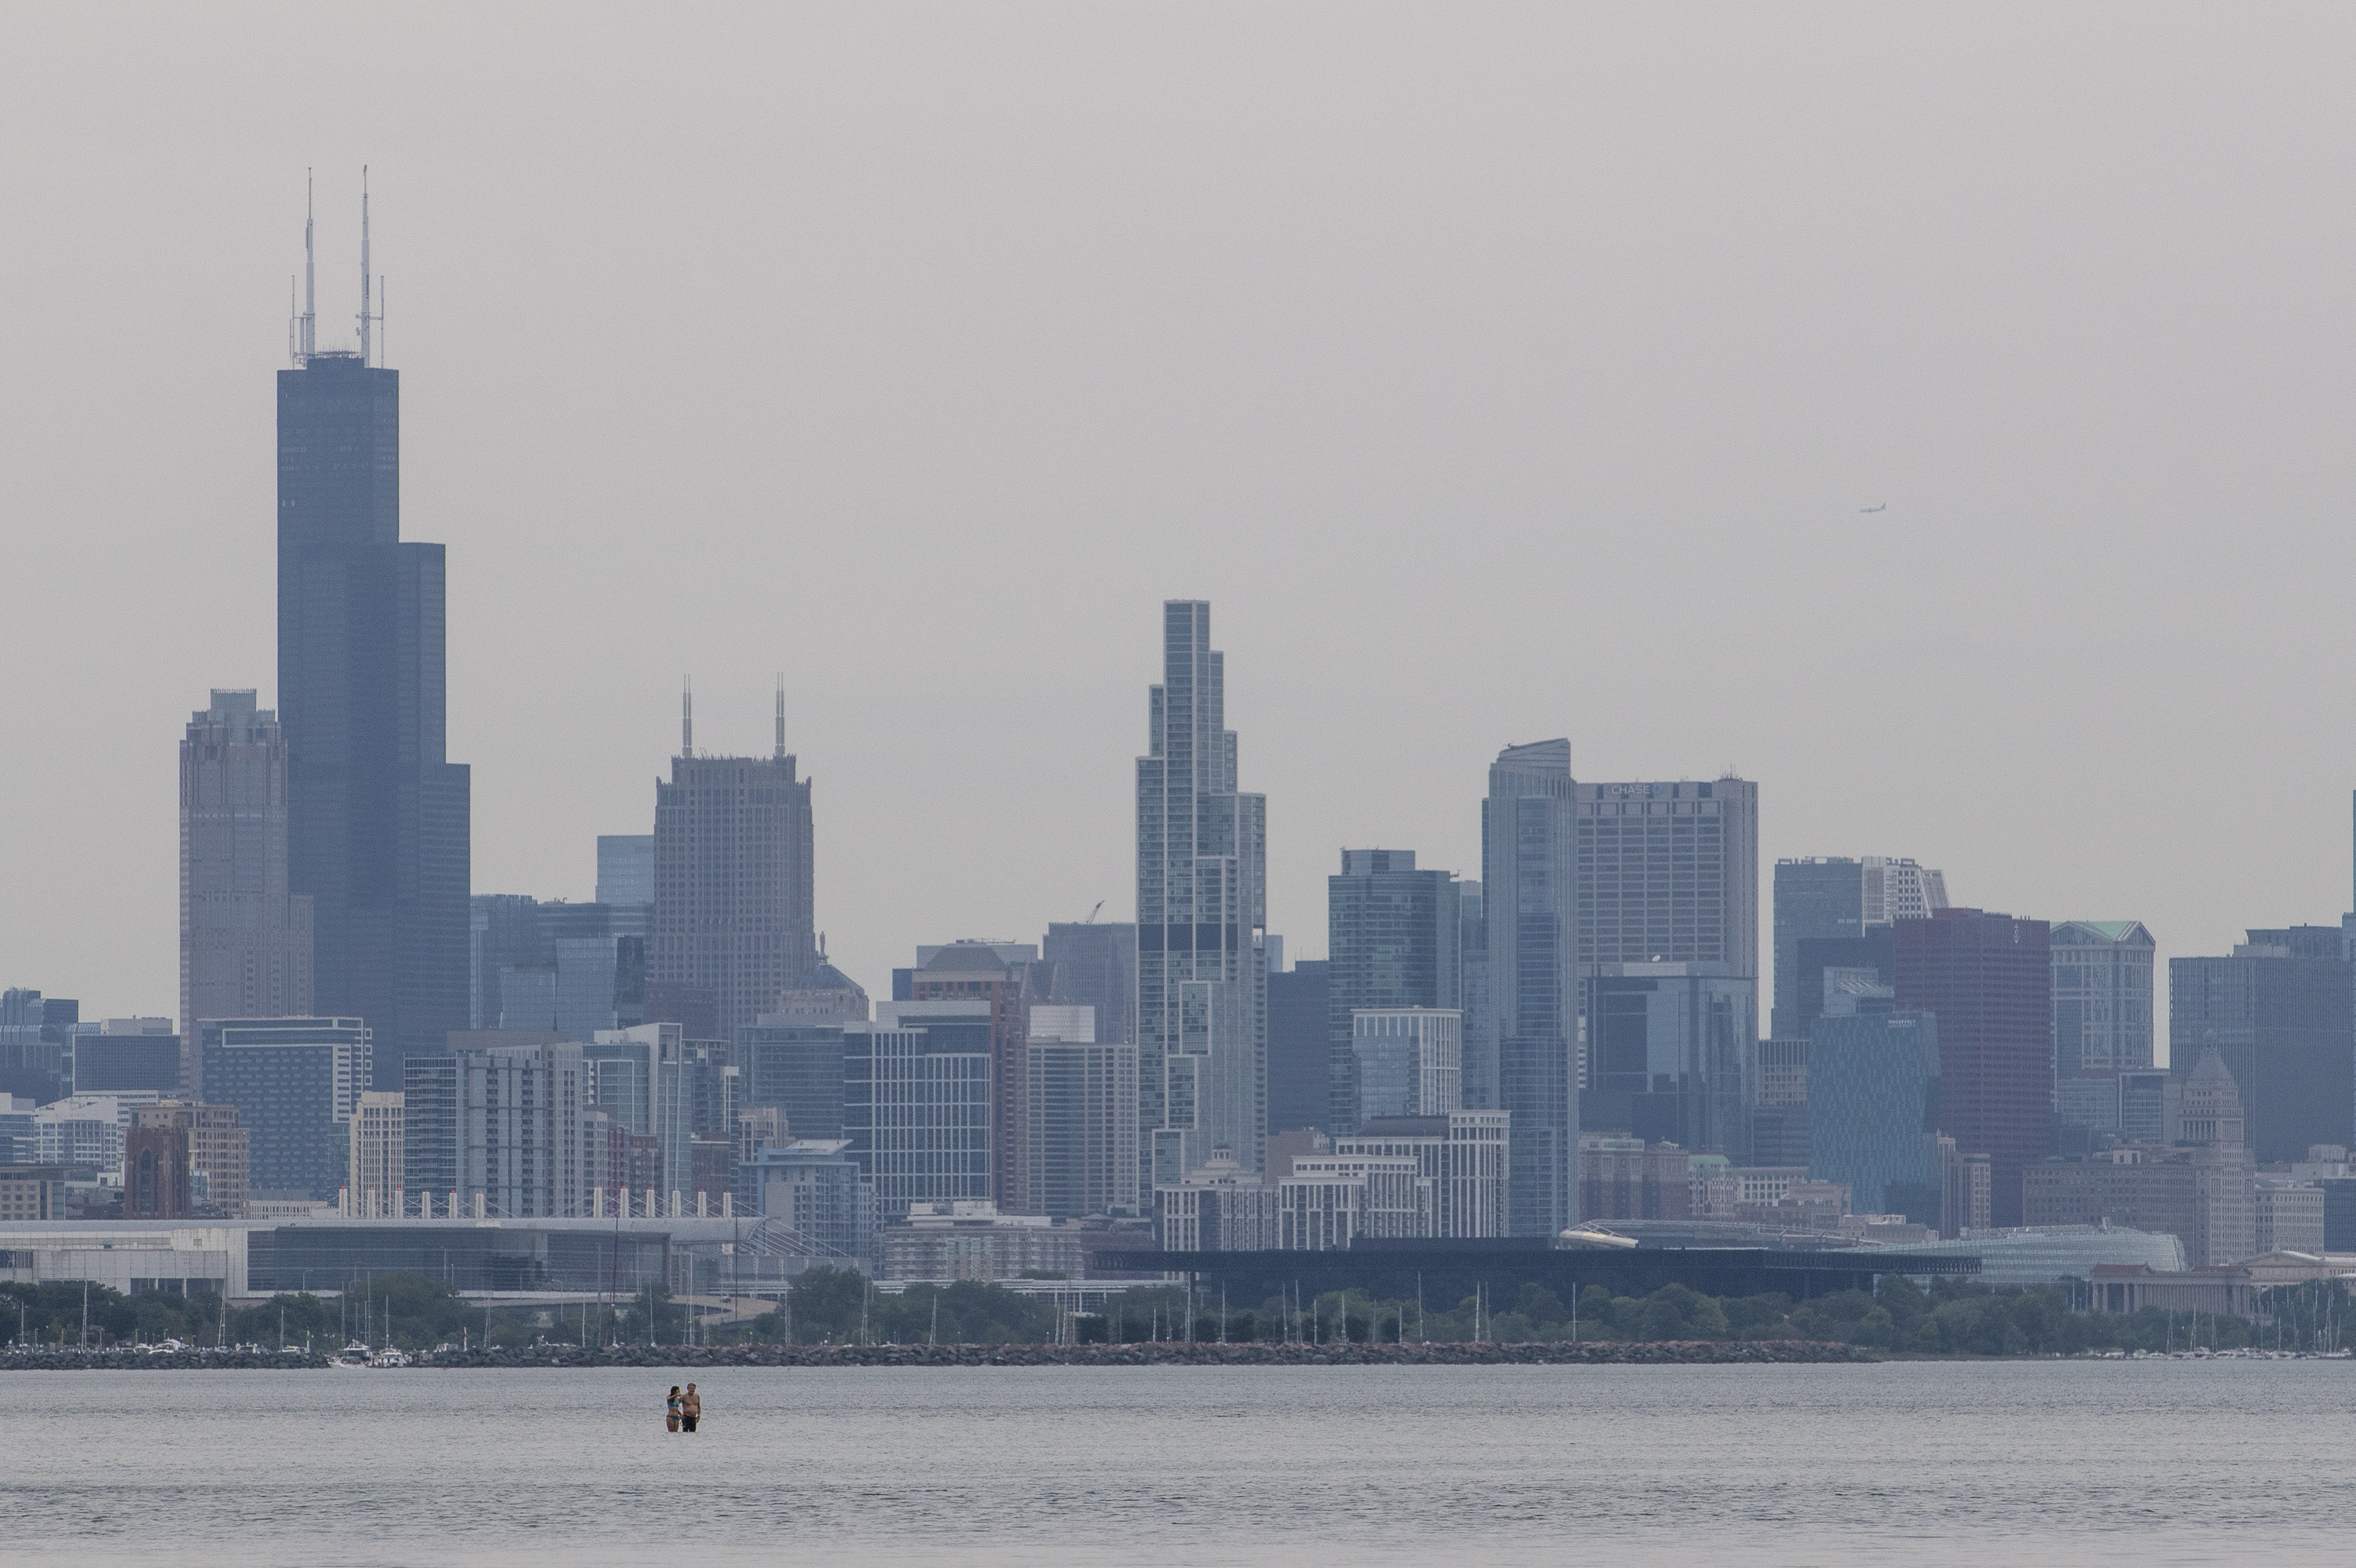 The city's population grew nearly 2% from 2010 to 2020 — from 2.6 million residents to 2.7 million, according to data released Thursday from the 2020 census.